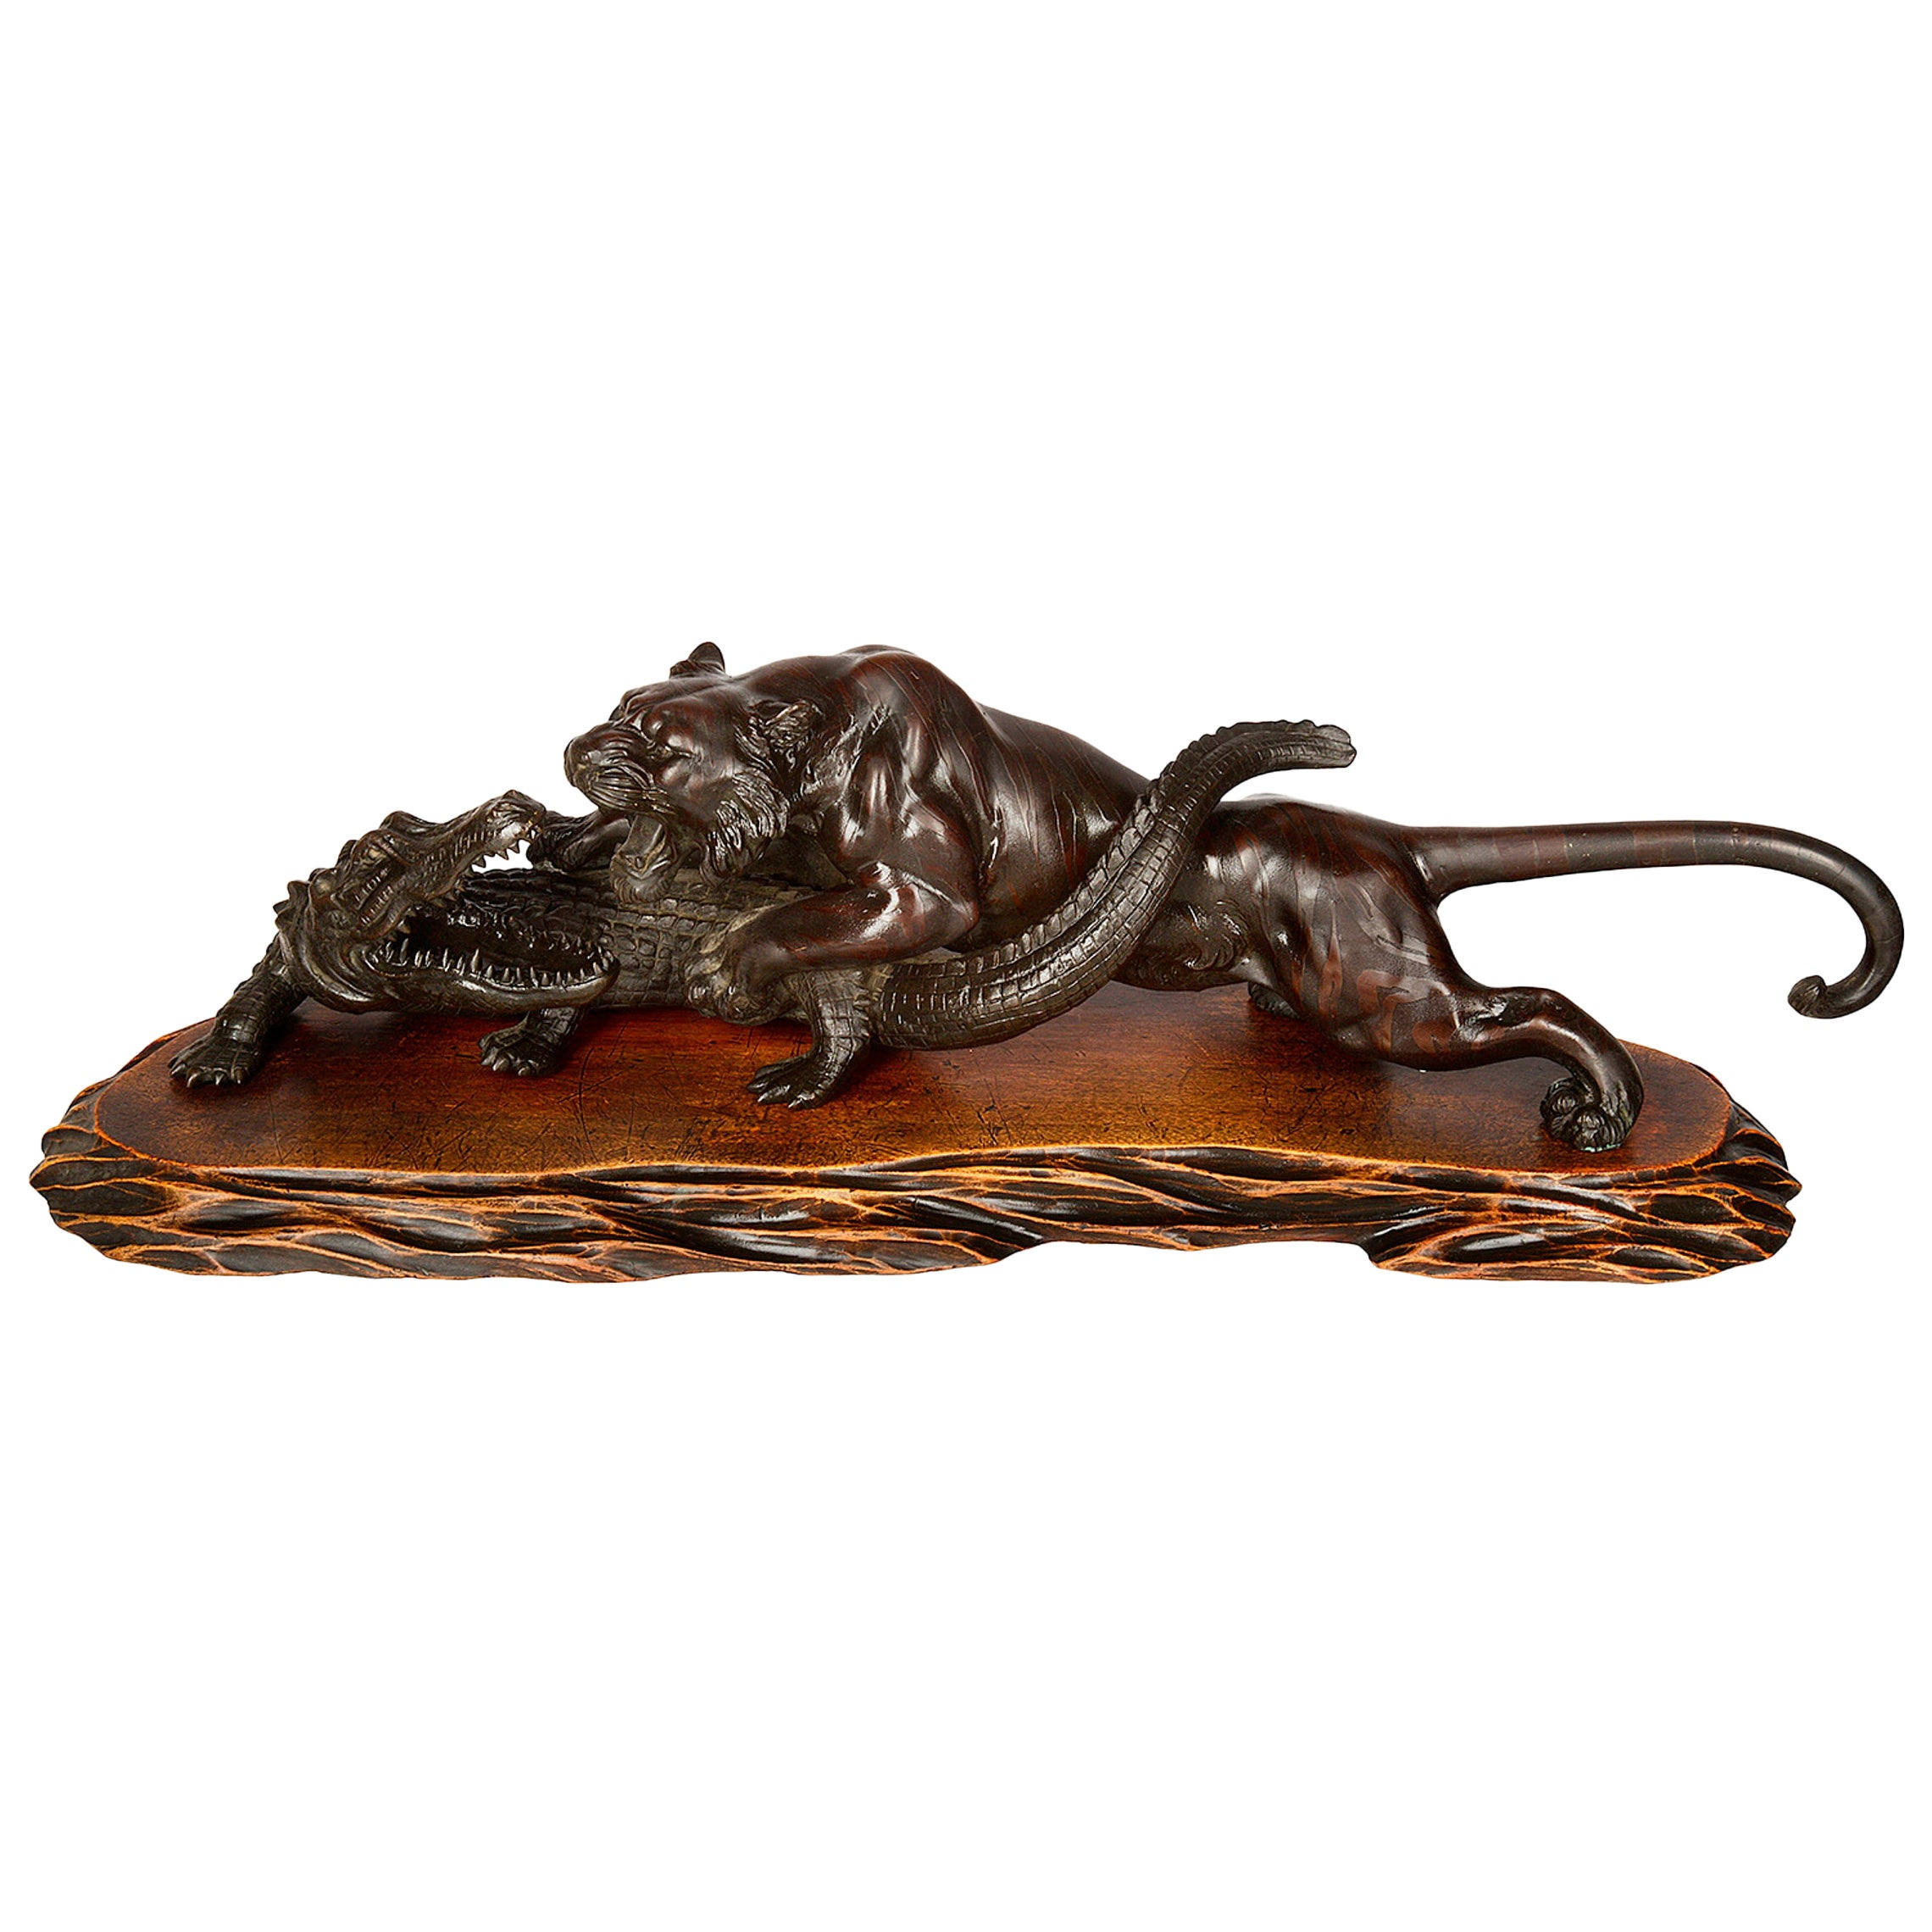 Japanese Meiji Period Bronze Tiger Attacking an Crocodile, 19th Century